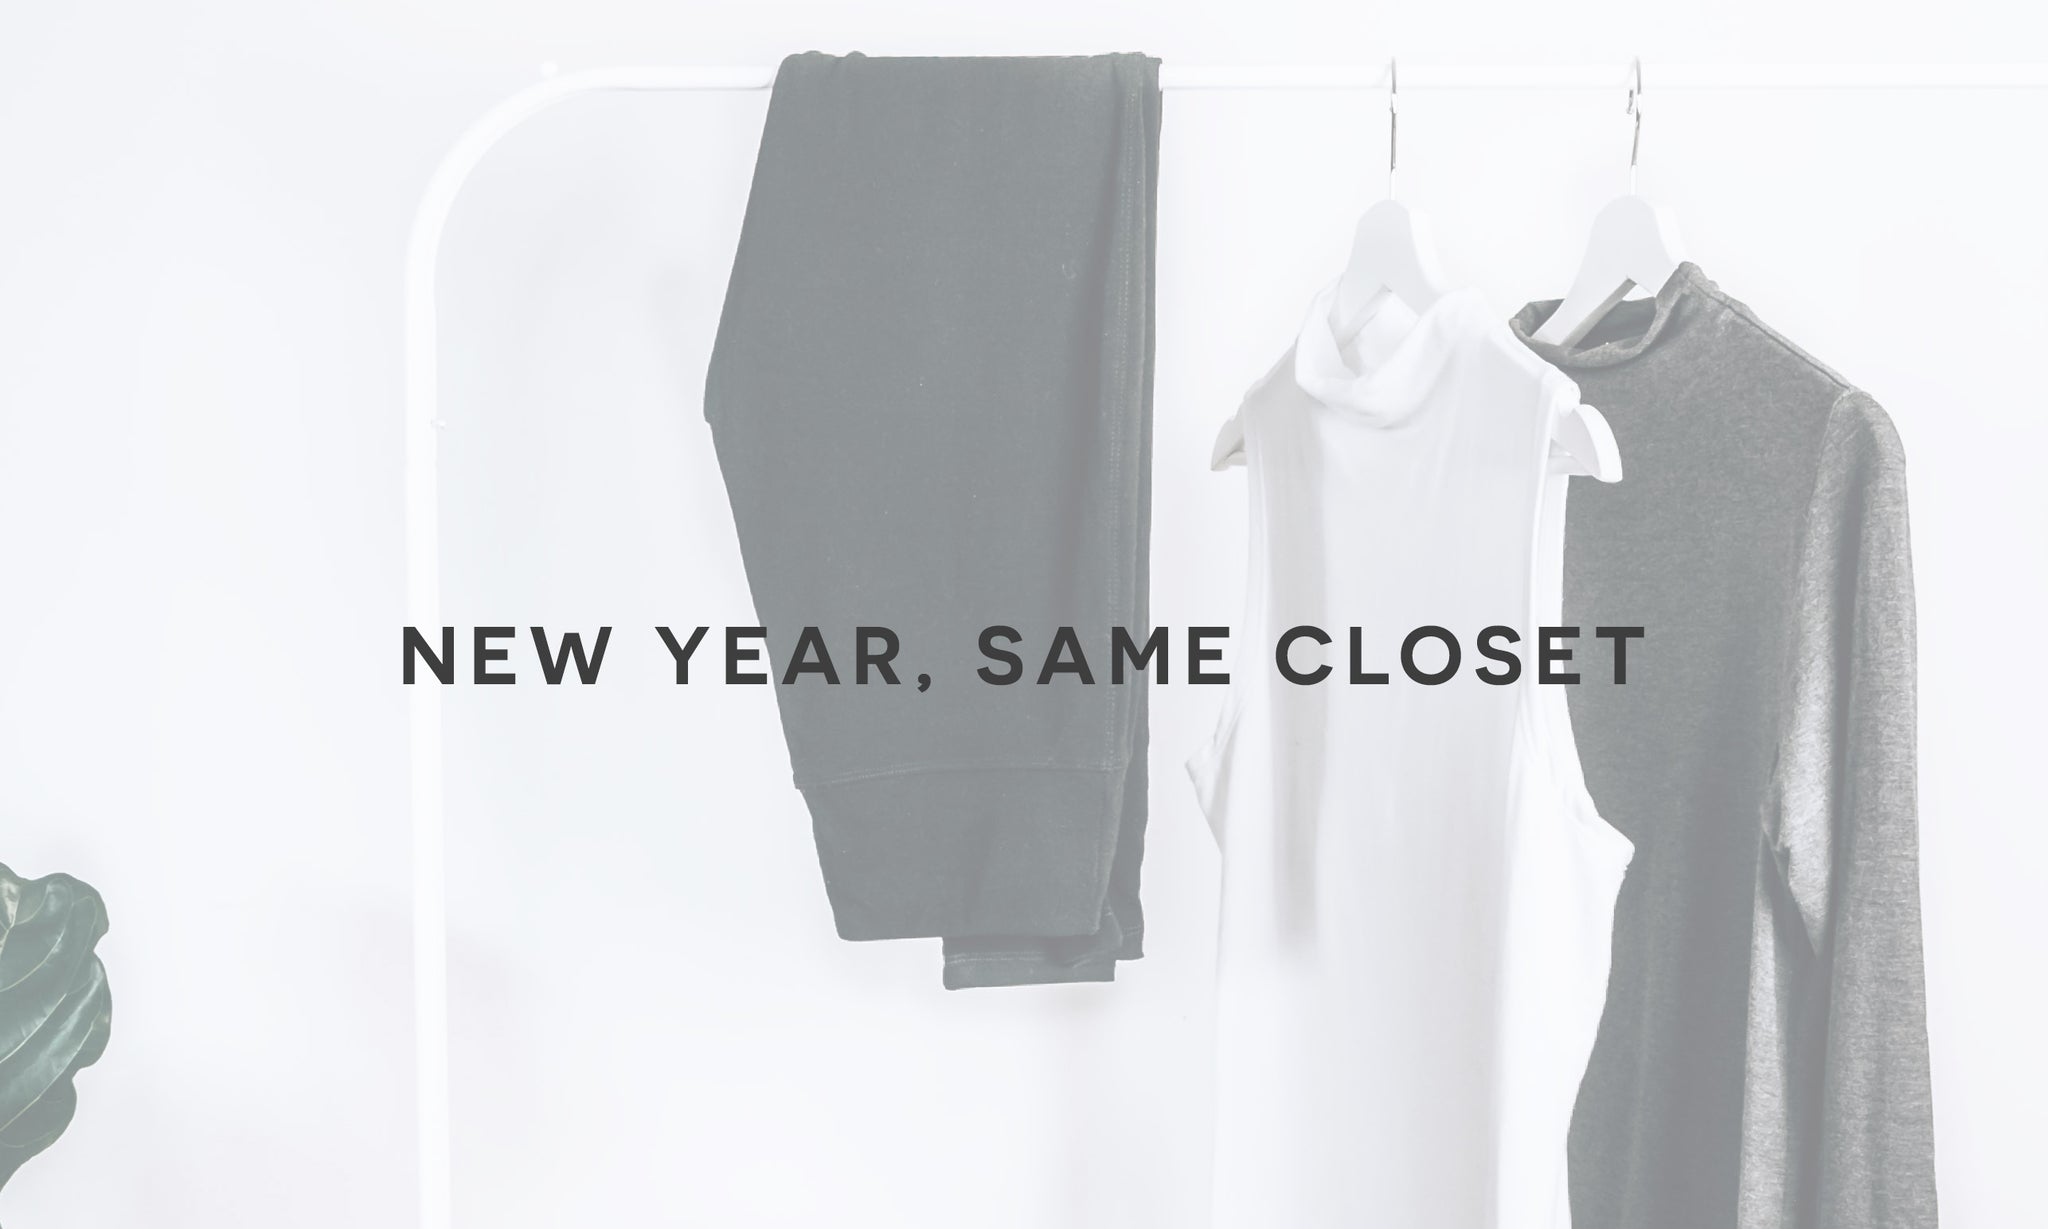 Image of clothing rack with text overlay: New year, same closet